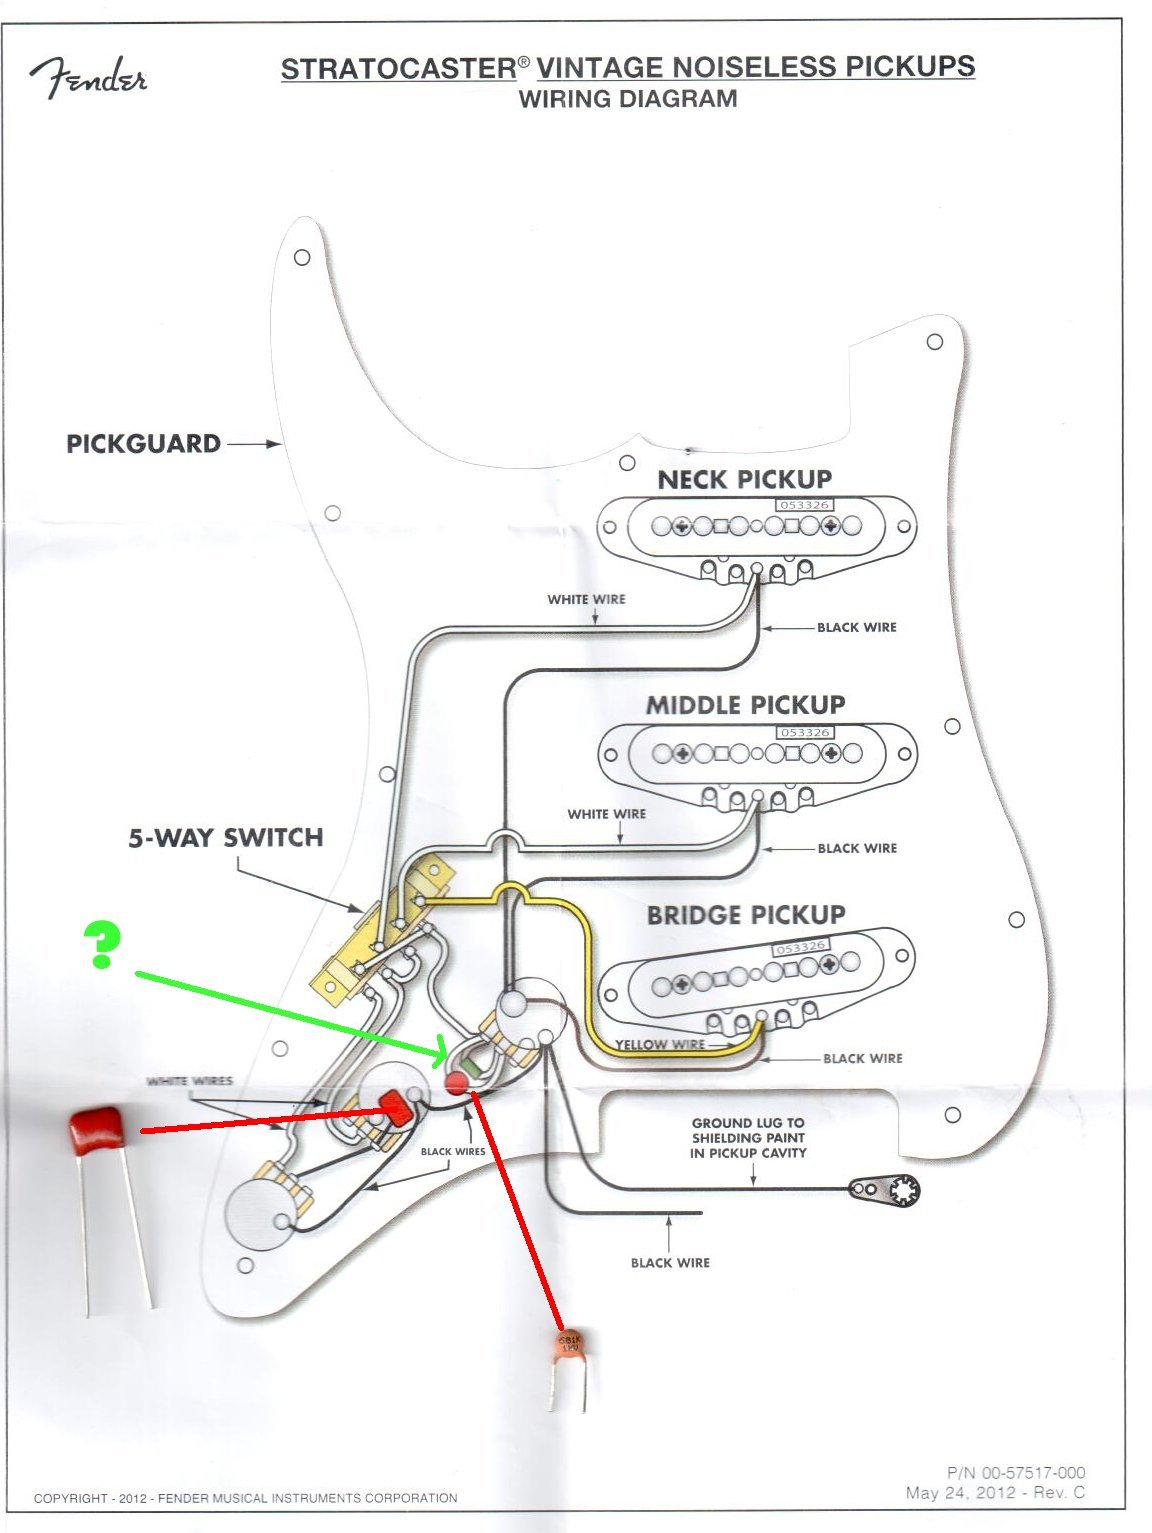 Vintage Air Gen 2 Wiring Diagram from wholefoodsonabudget.com